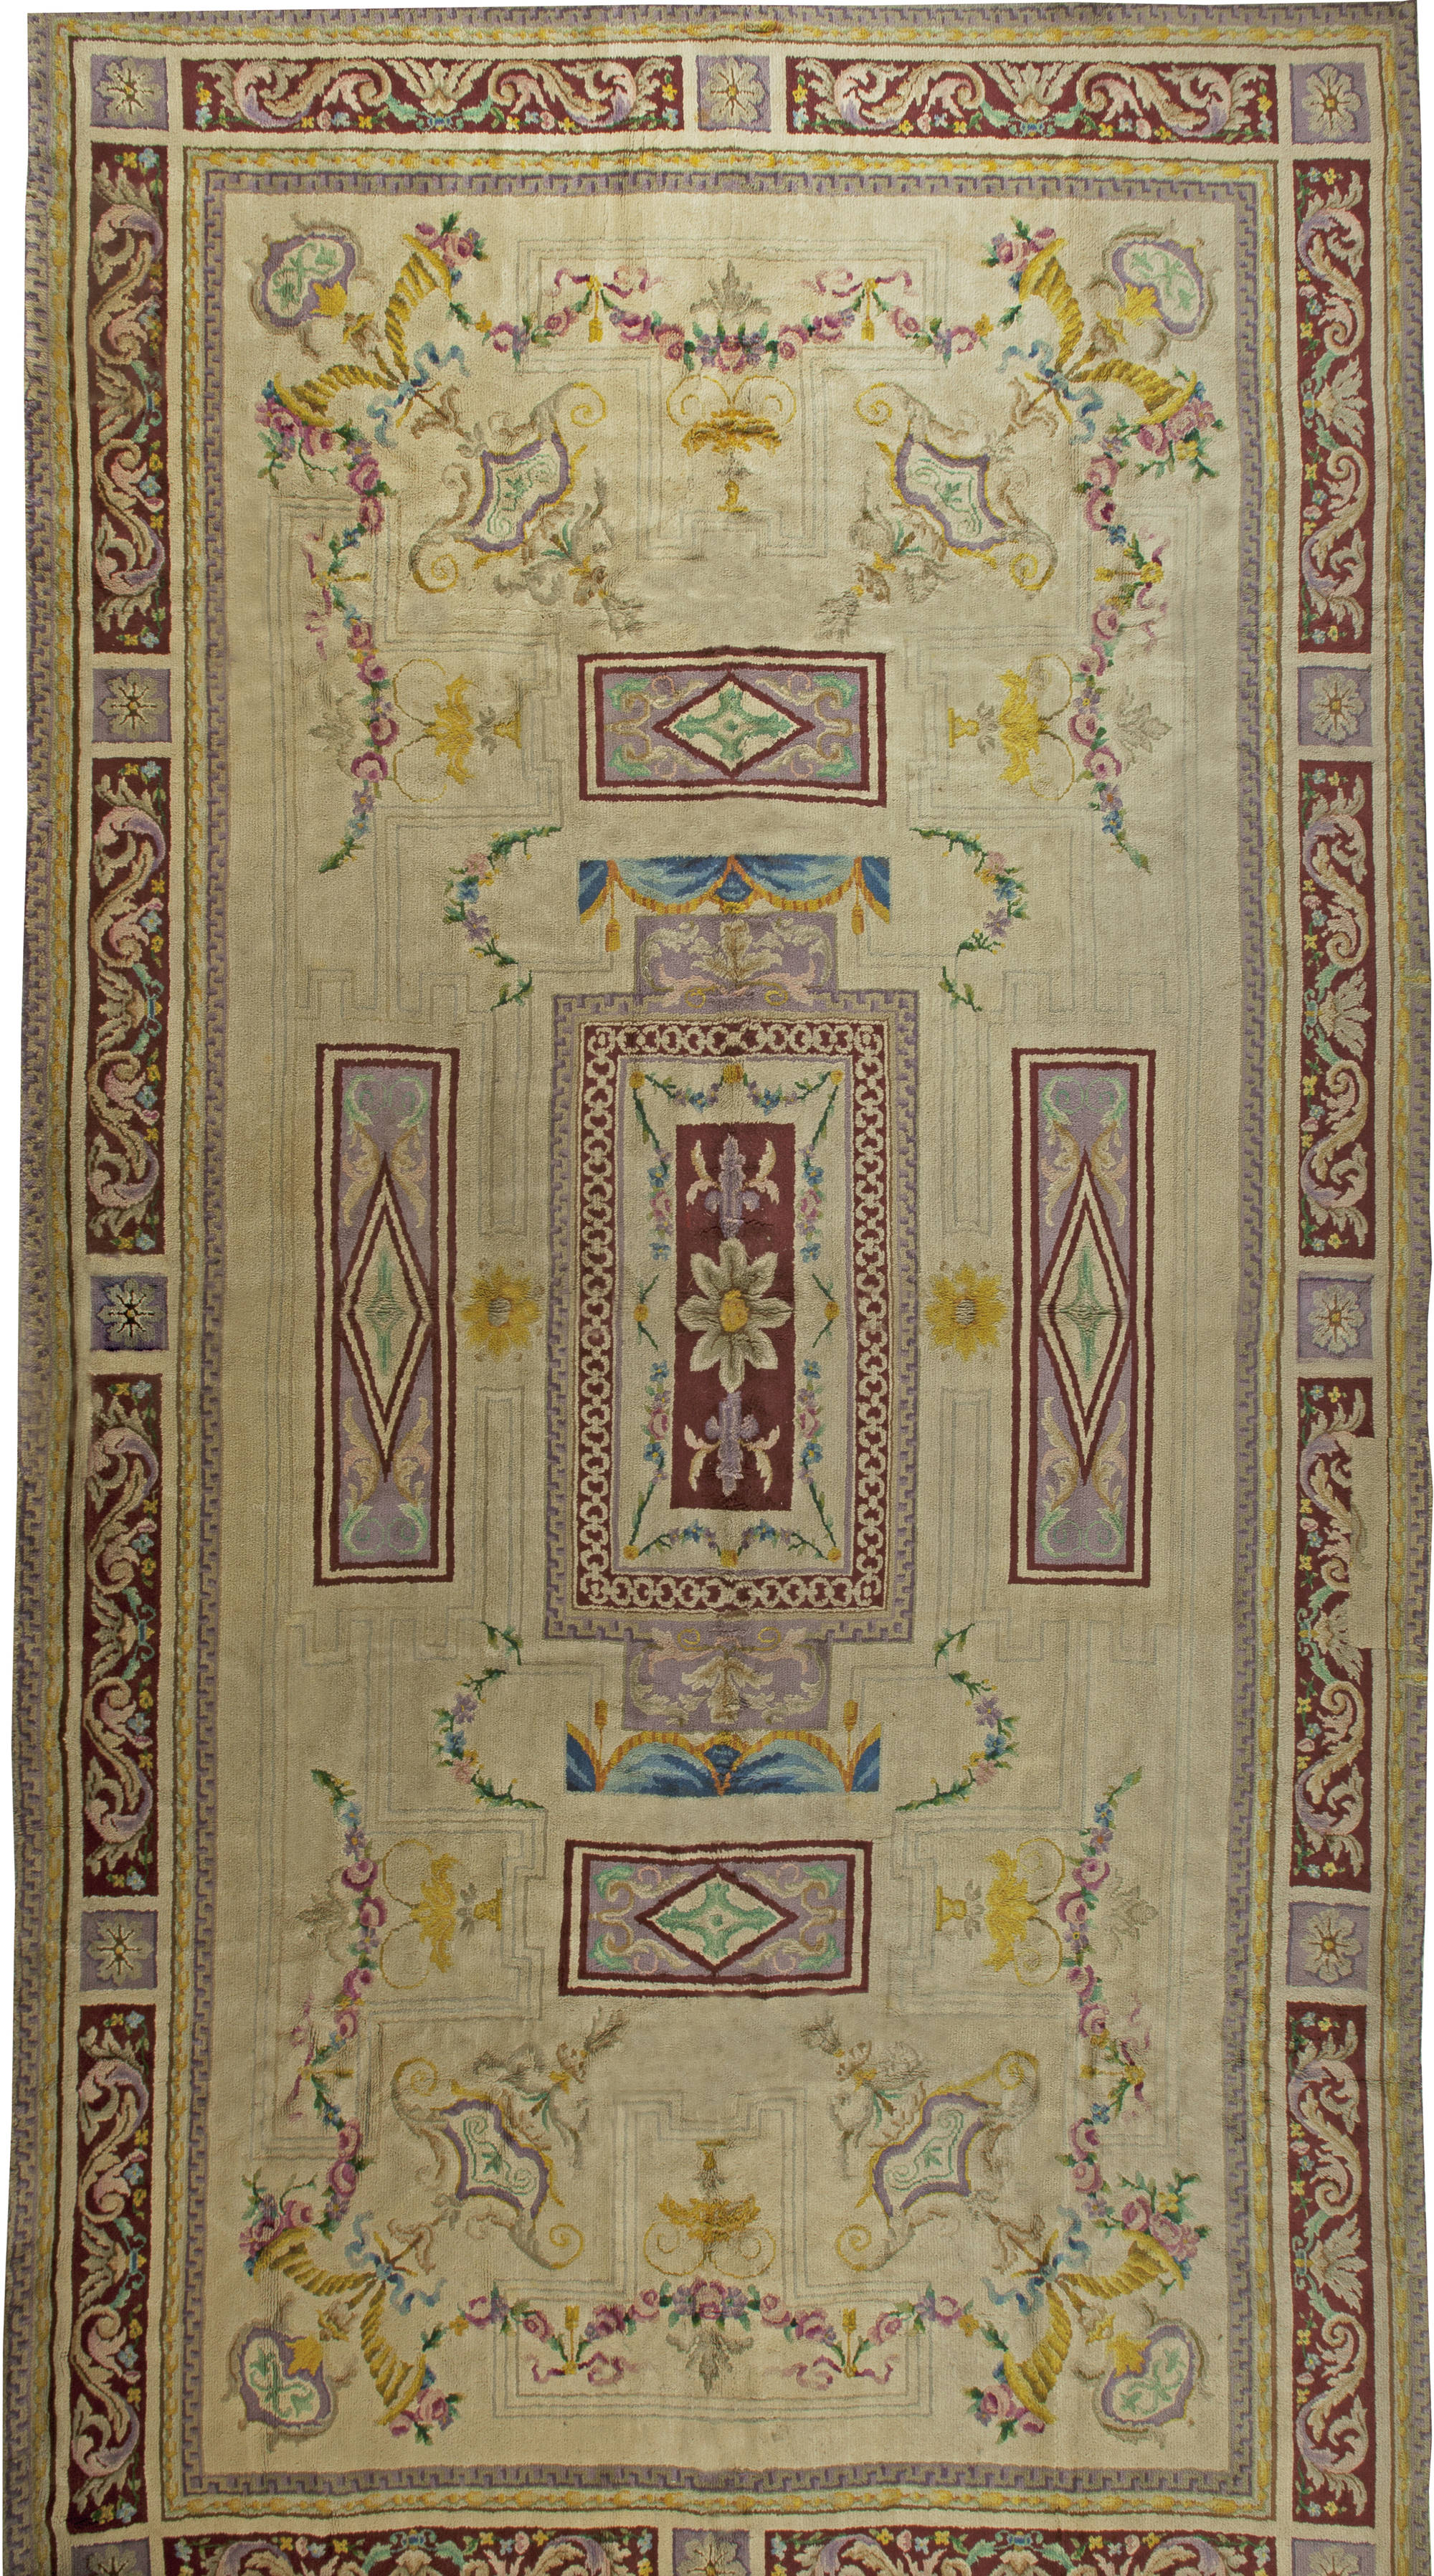 spanish rugs area carpets for sale antique vintage style rug nyc. Black Bedroom Furniture Sets. Home Design Ideas